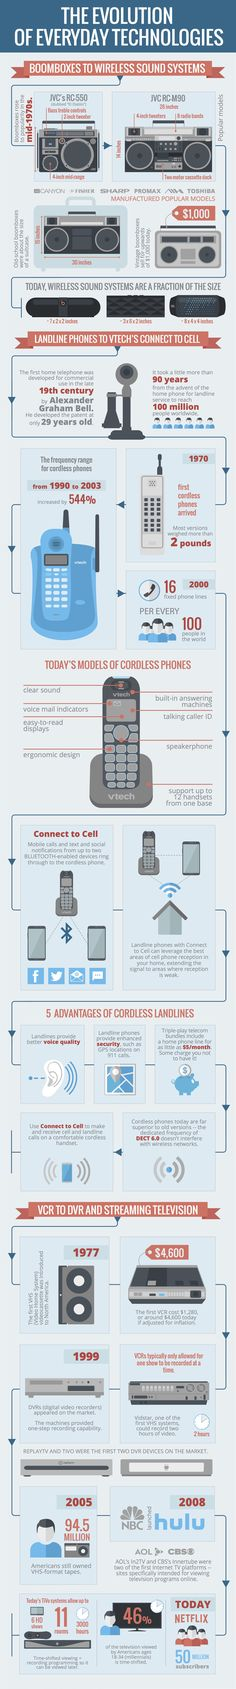 The Evolution of Everyday Technologies #infographic #Technology #History